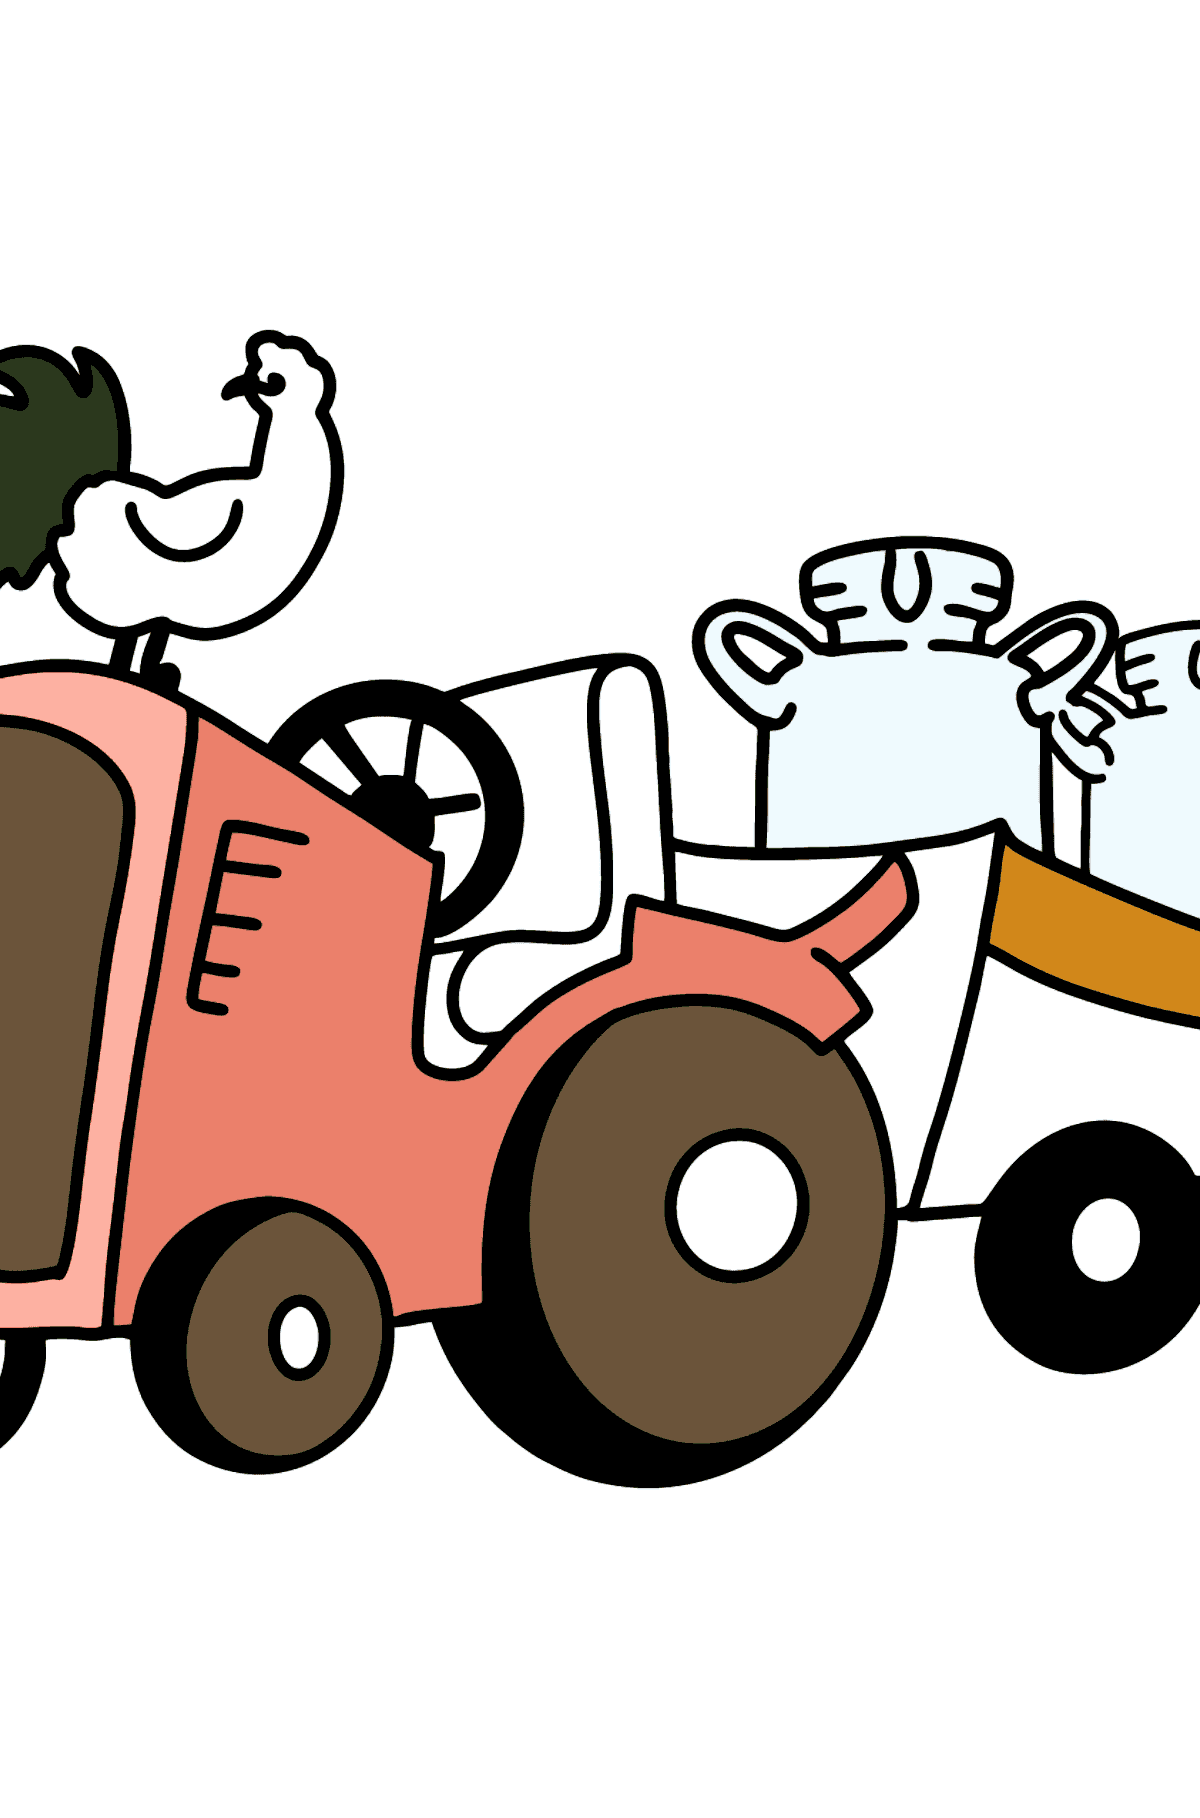 Tractor on a Farm coloring page - Coloring Pages for Kids